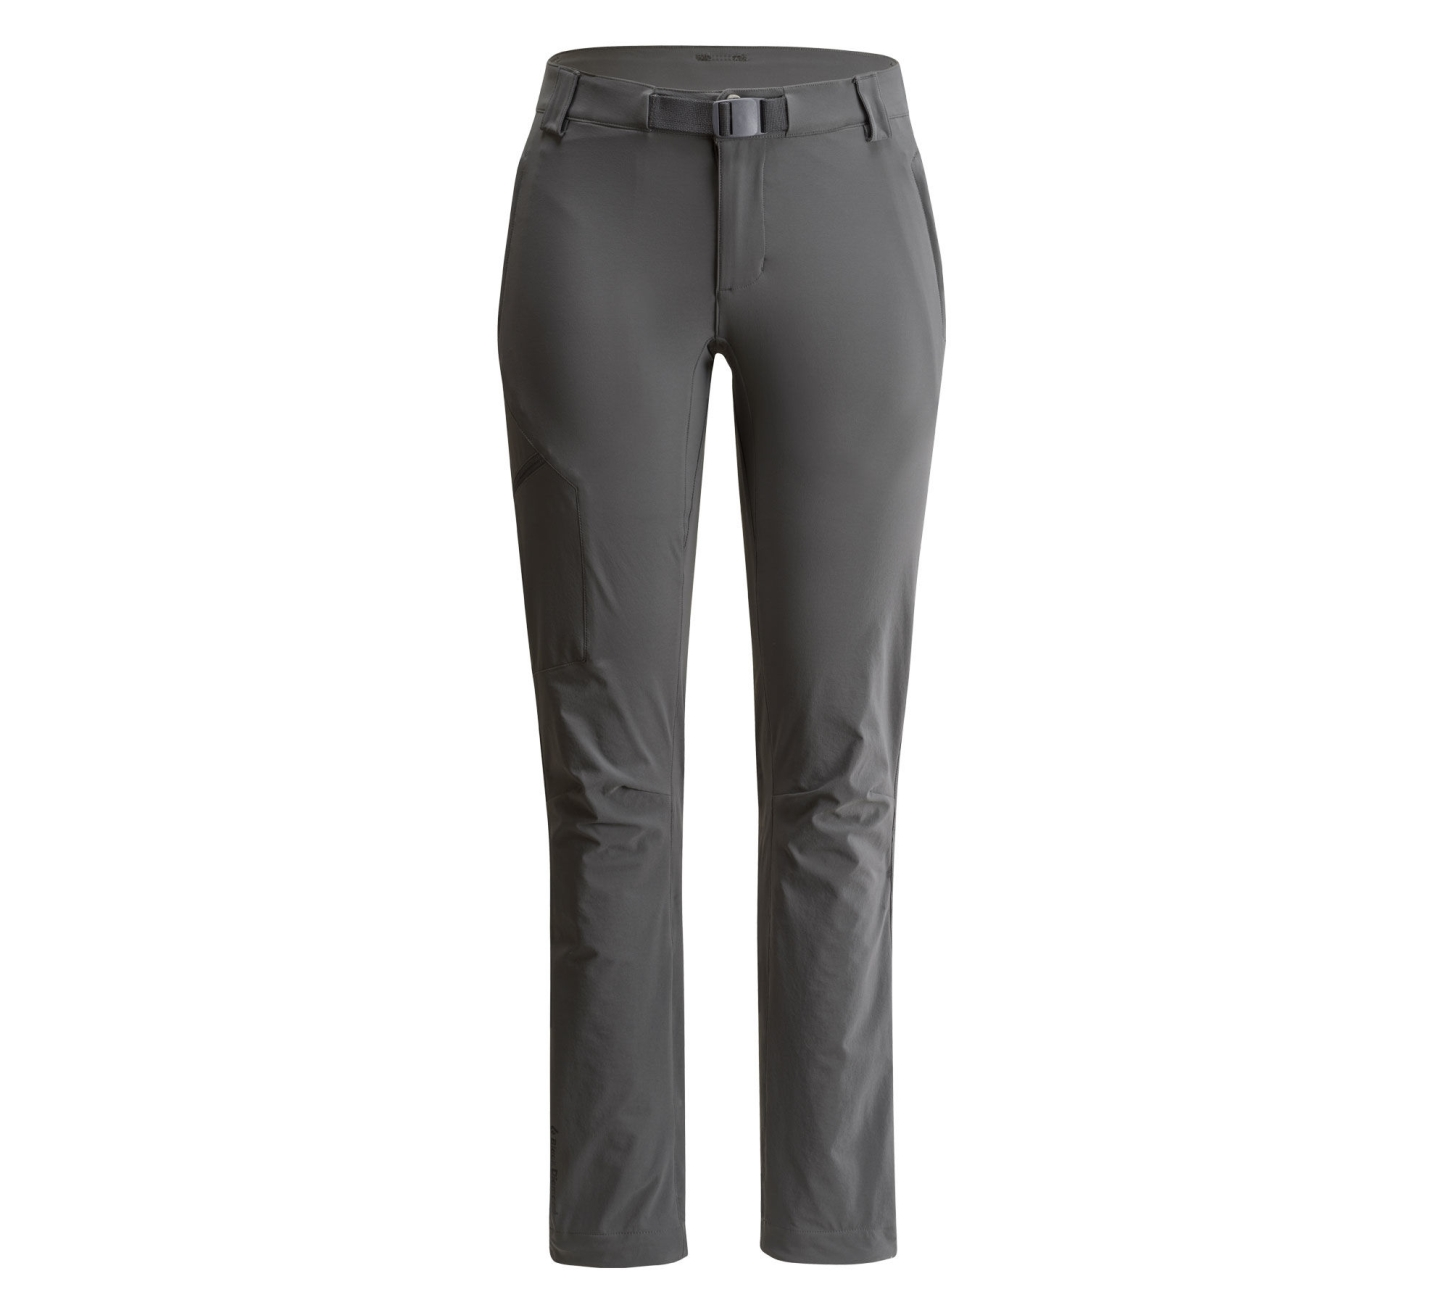 Black Diamond Alpine Softshell Pants Women's Granite-30